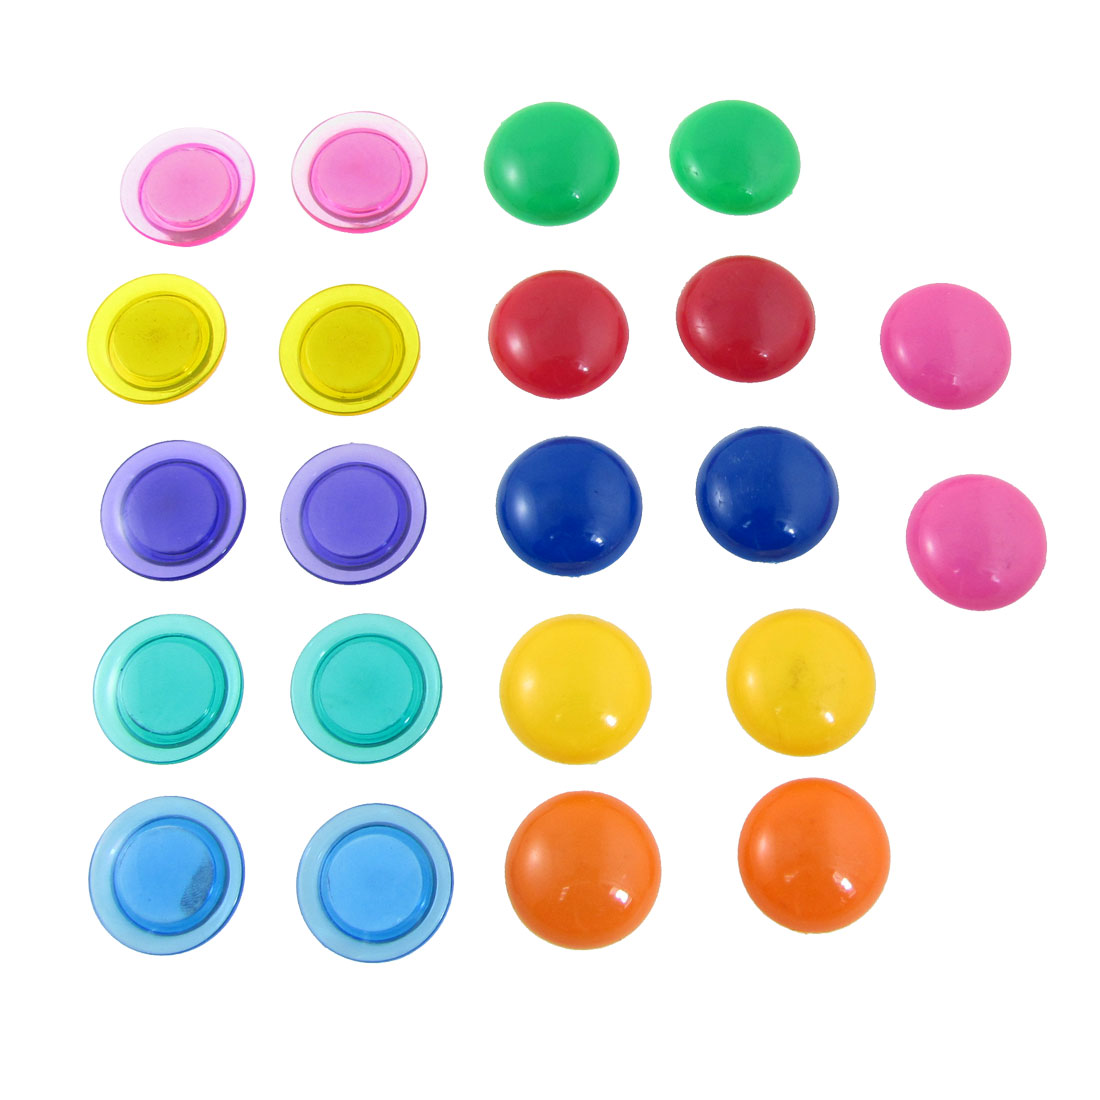 22 Pcs 30mm Dia Round Fridge Magnet Magnetic Sticker Paper Memo Holder Set